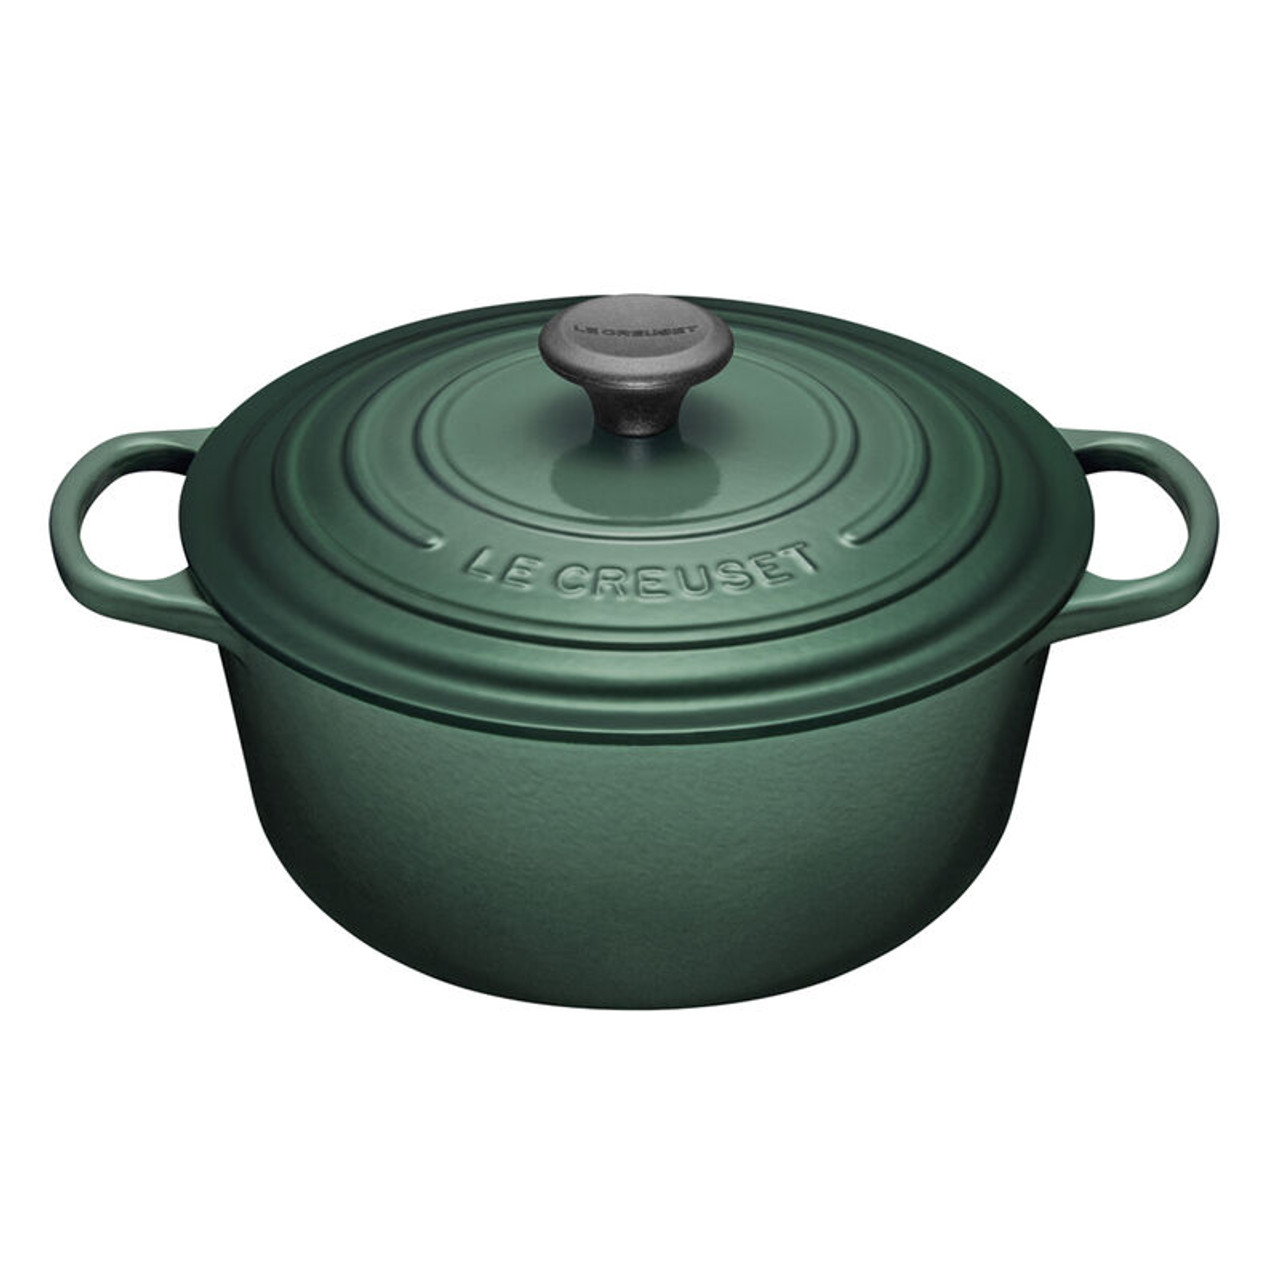 LE CREUSET ROUND FRENCH OVEN 5.3L